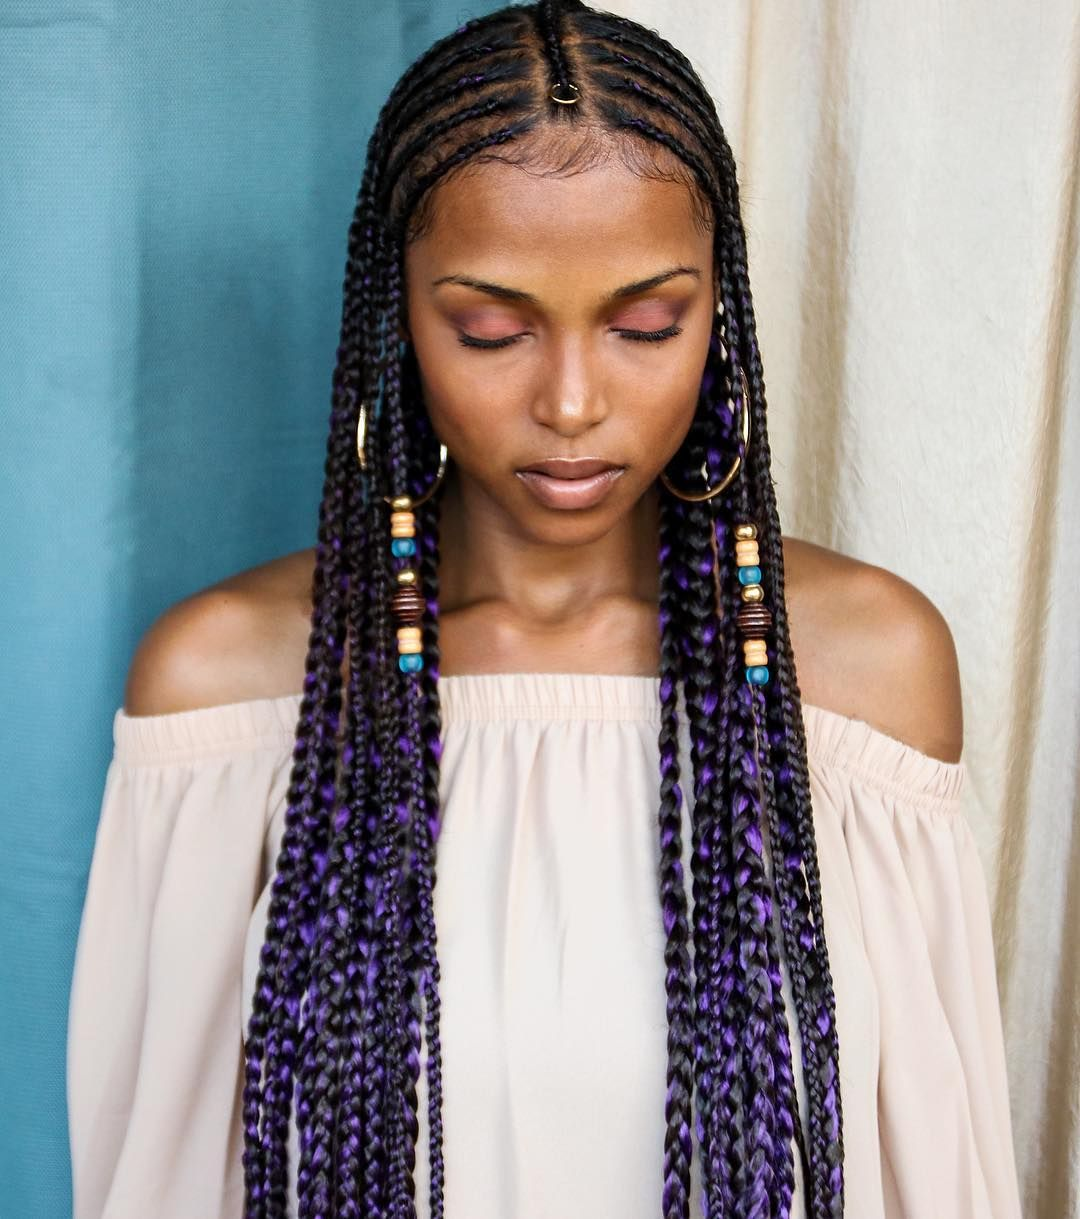 23 Trendy Ways to Rock African Braids 23 Trendy Ways to Rock African Braids new picture